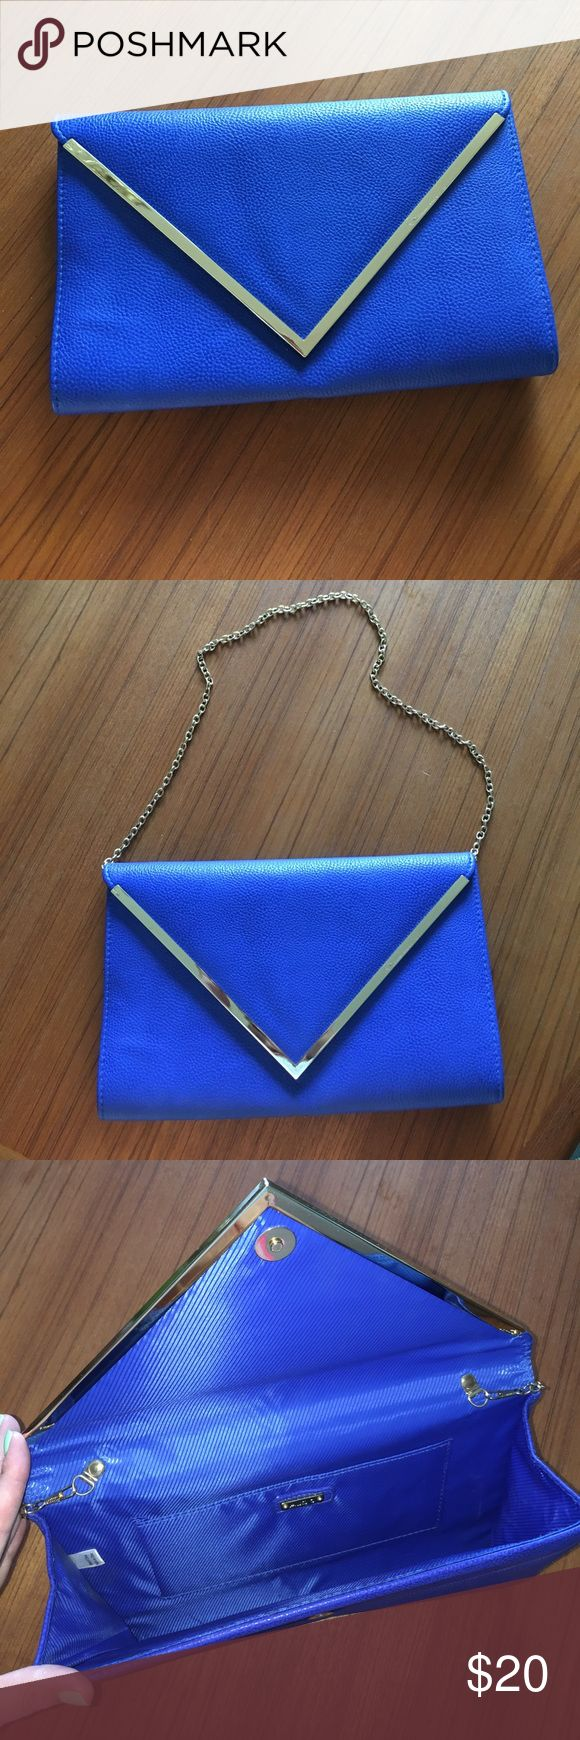 "Aldo Envelope Clutch/purse in royal blue Aldo envelope clutch/purse with gold metal strap (which hides nicely if want as clutch). Color is royal blue, really good condition. Small scratch on metal as shown in picture. Measures about 7 1/2"" tall & 12"" wide Aldo Bags"